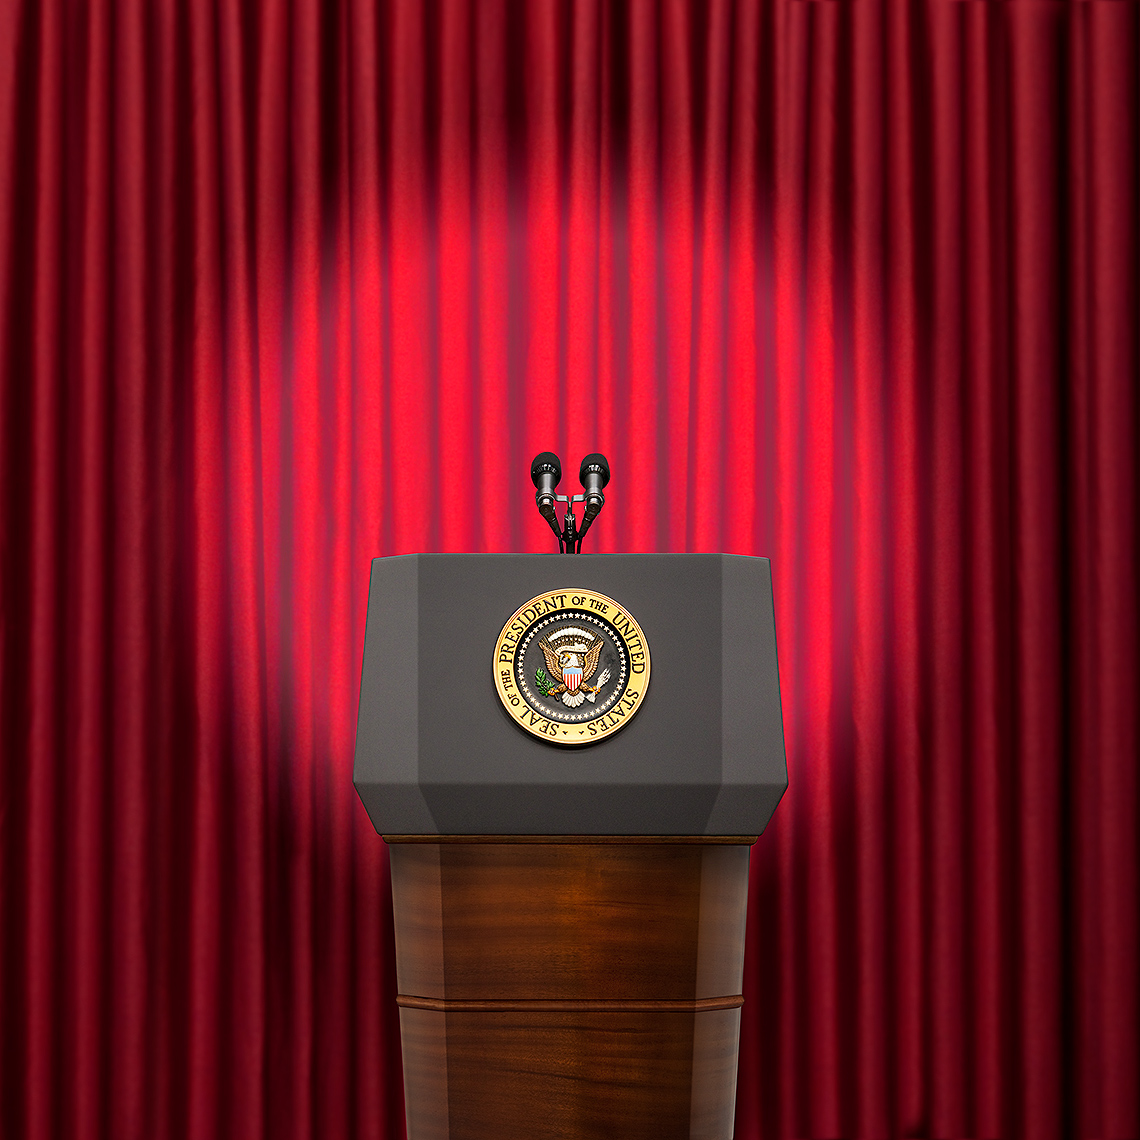 President of the US podium photo-illustration by John Kuczala